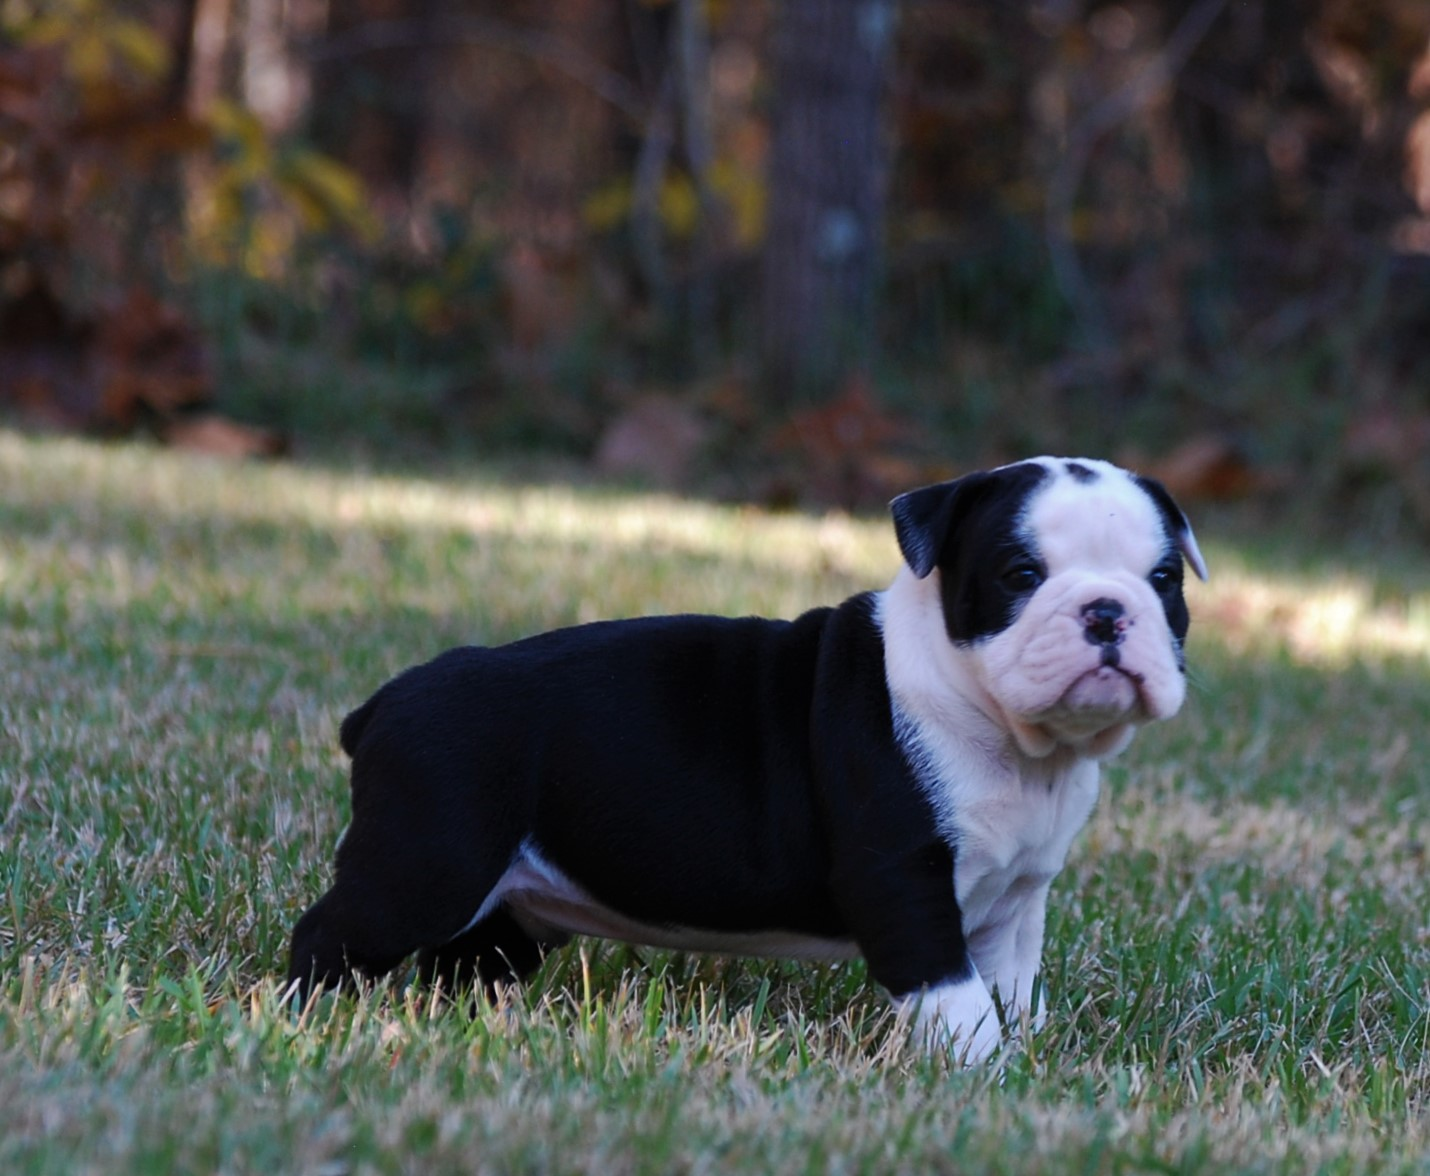 Delilah Olde English Bulldogge Puppy For Sale | Photo 1